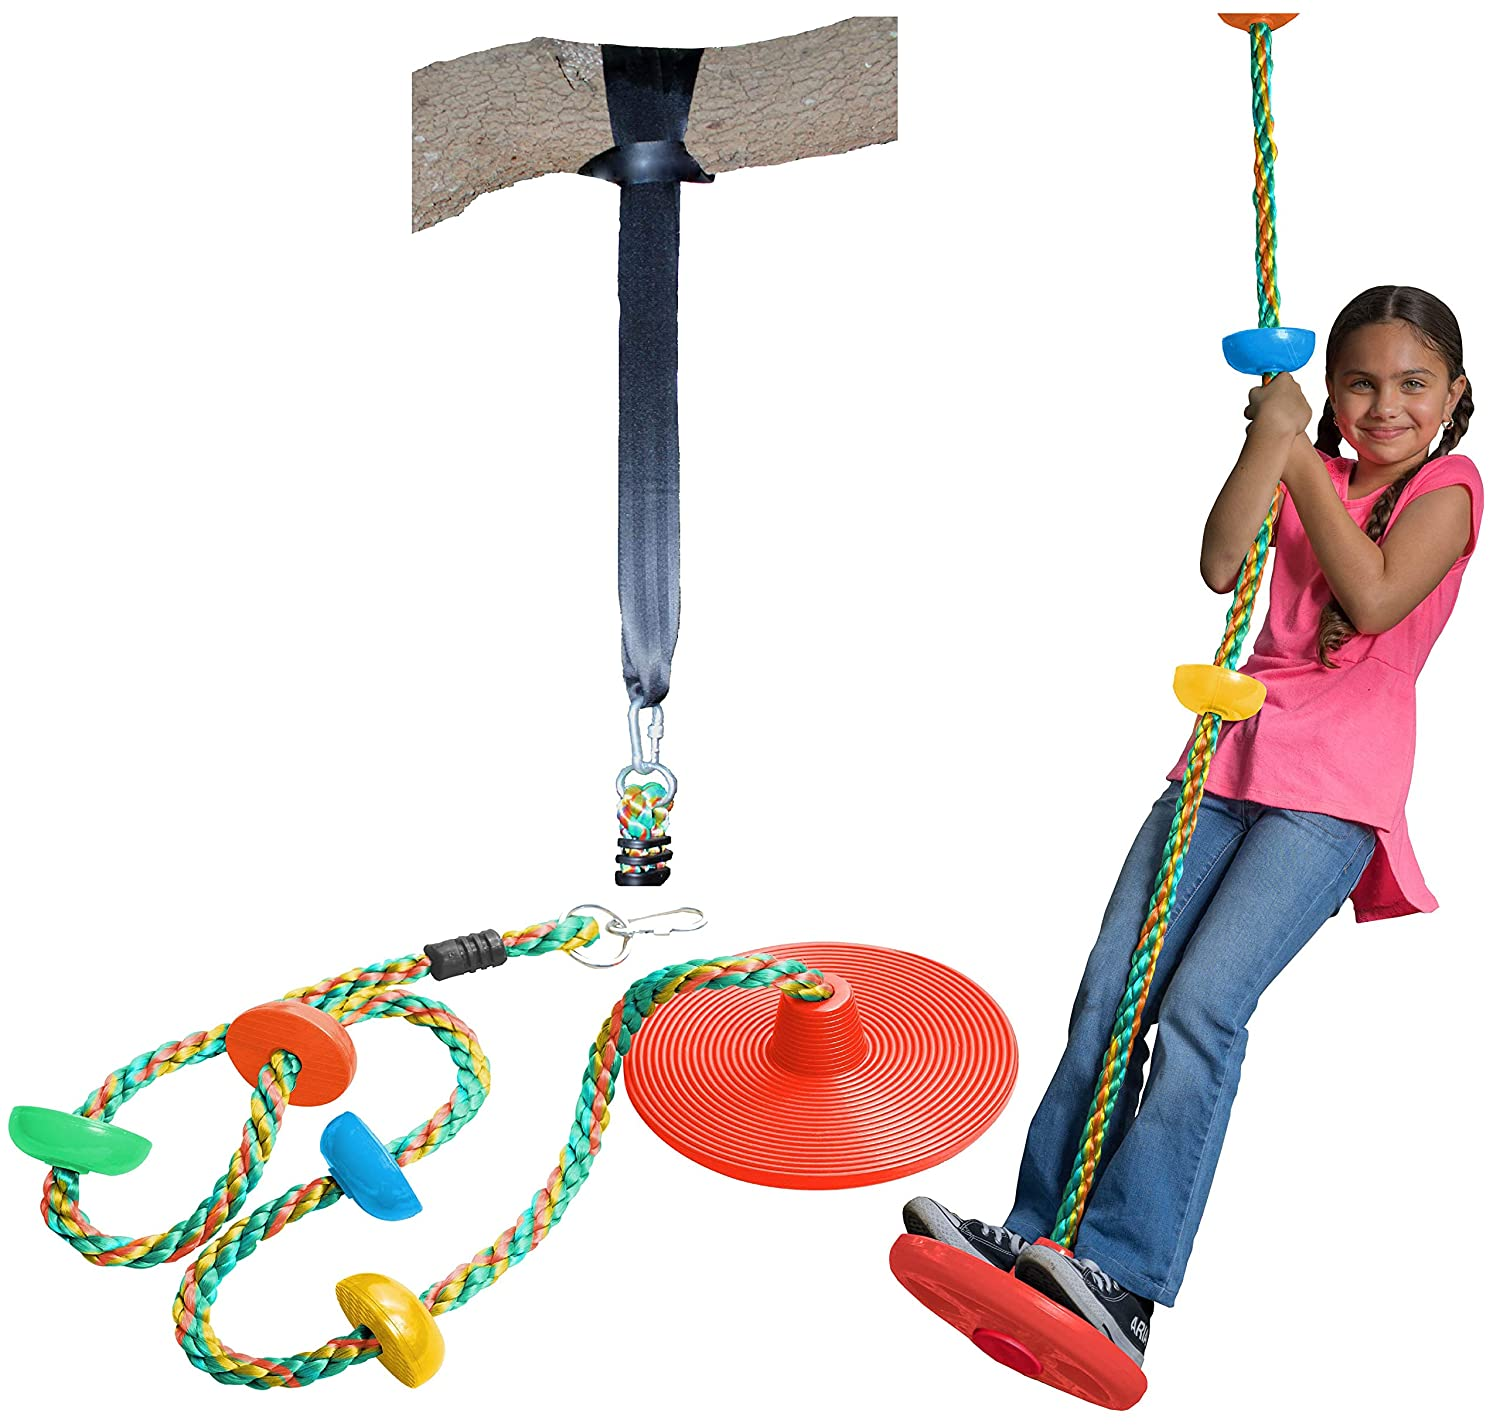 Jungle Gym Kingdom Tree Swing Climbing Rope with Platforms Disc Swings Seat - Outdoor Playground Set Accessories Tree House Flying Saucer Swing Outside Kids Toys - Snap Hook and 4 Feet Strap